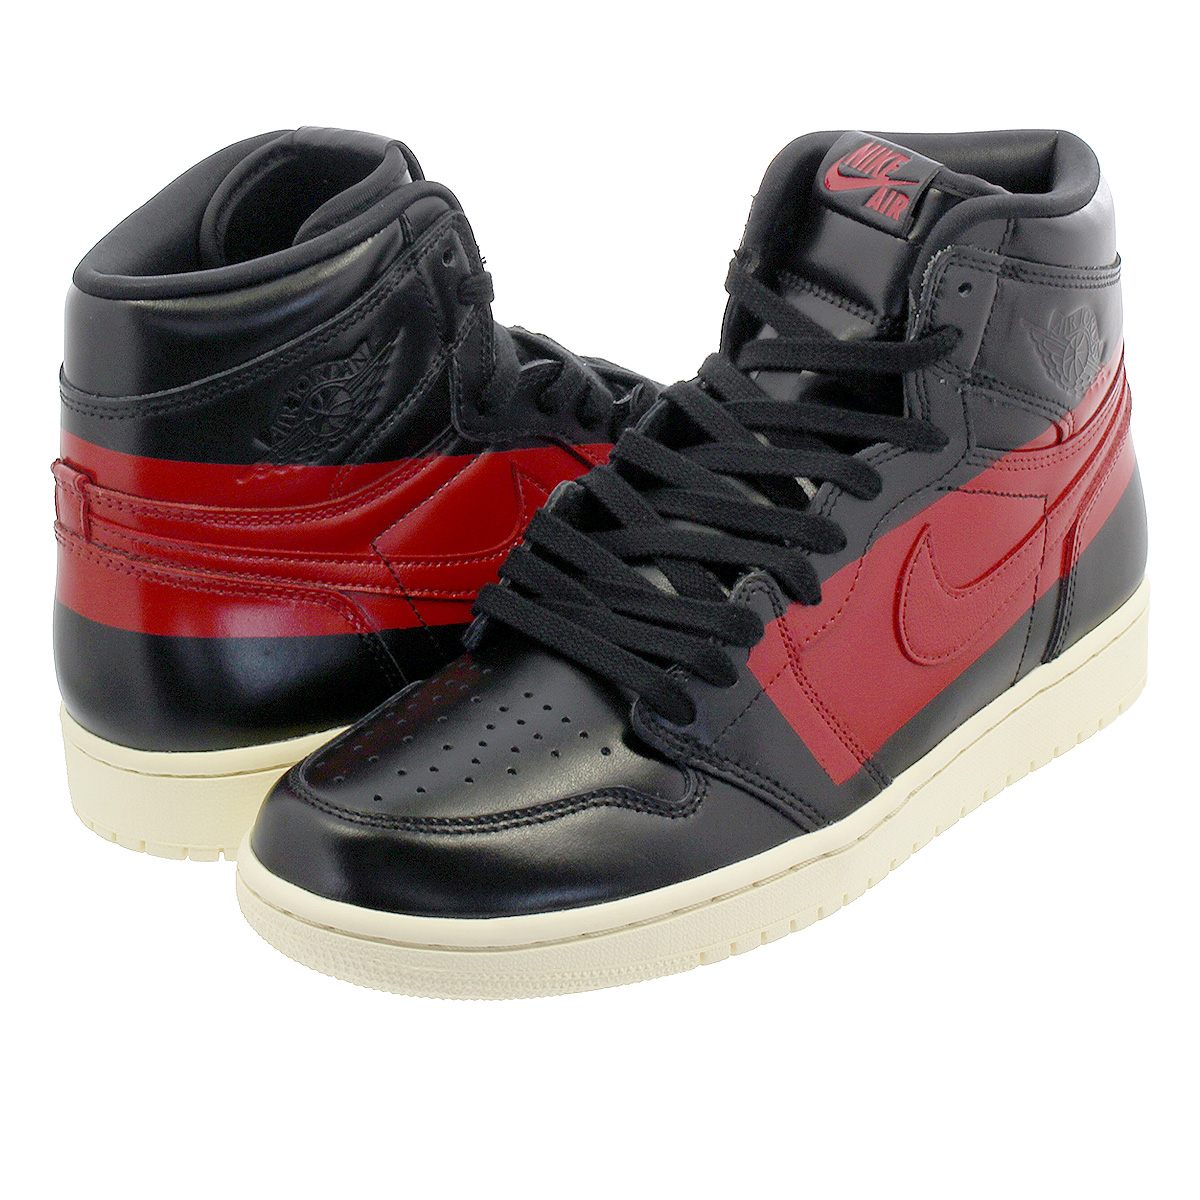 competitive price c603d c6b47 NIKE AIR JORDAN 1 RETRO HIGH OG DEFIANT Nike Air Jordan 1 nostalgic high OG  ディファ ...